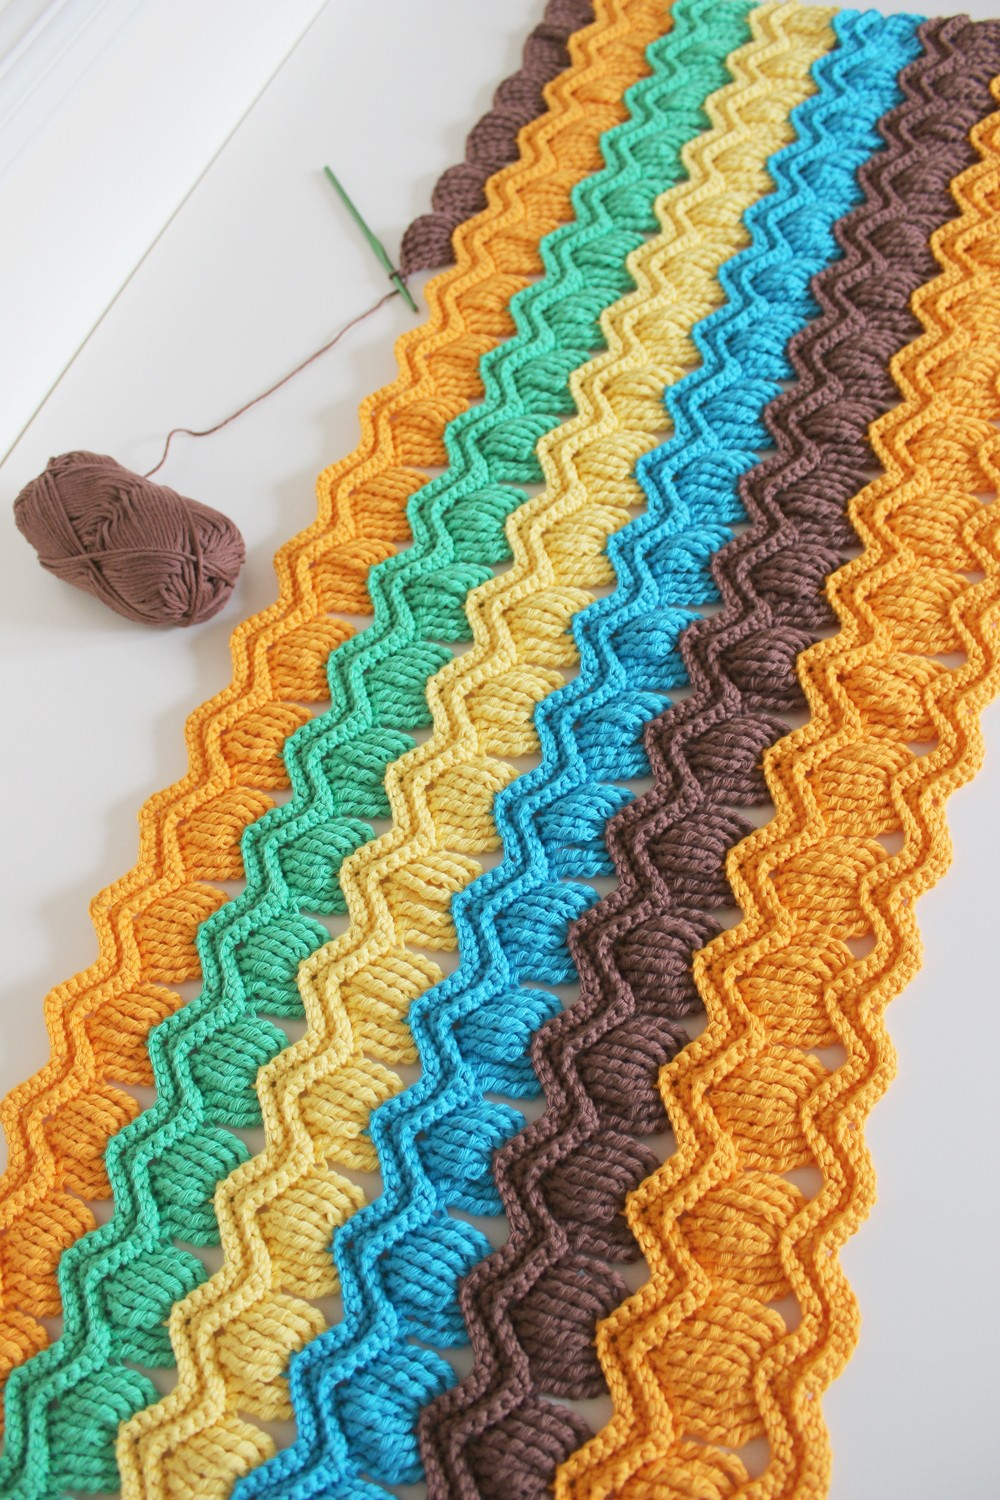 About Crochet : Free Pattern] Crochet Vintage Fan Ripple Stitch